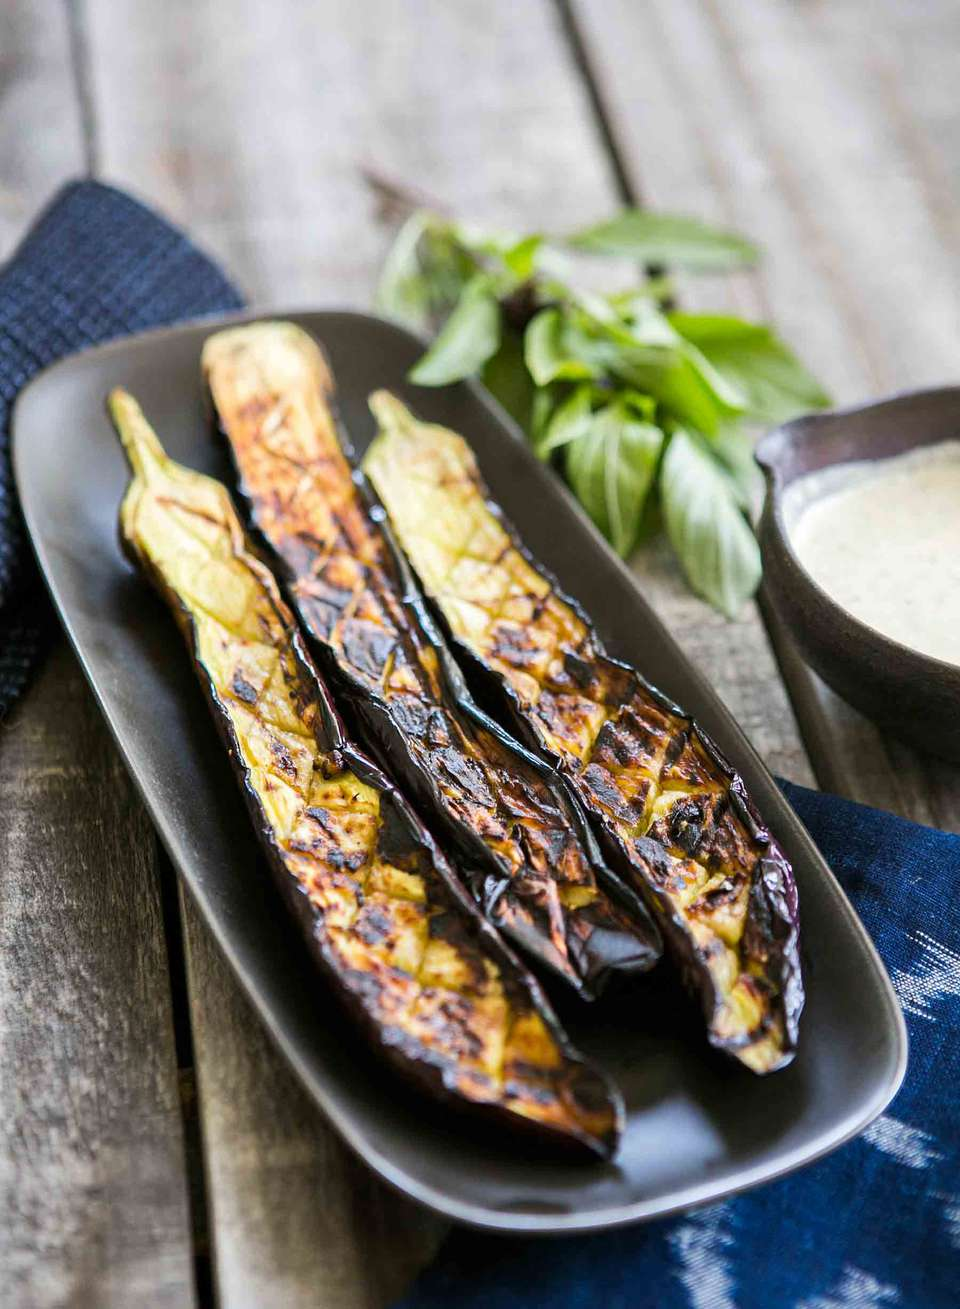 Japanese Eggplant with Tahini Sauce